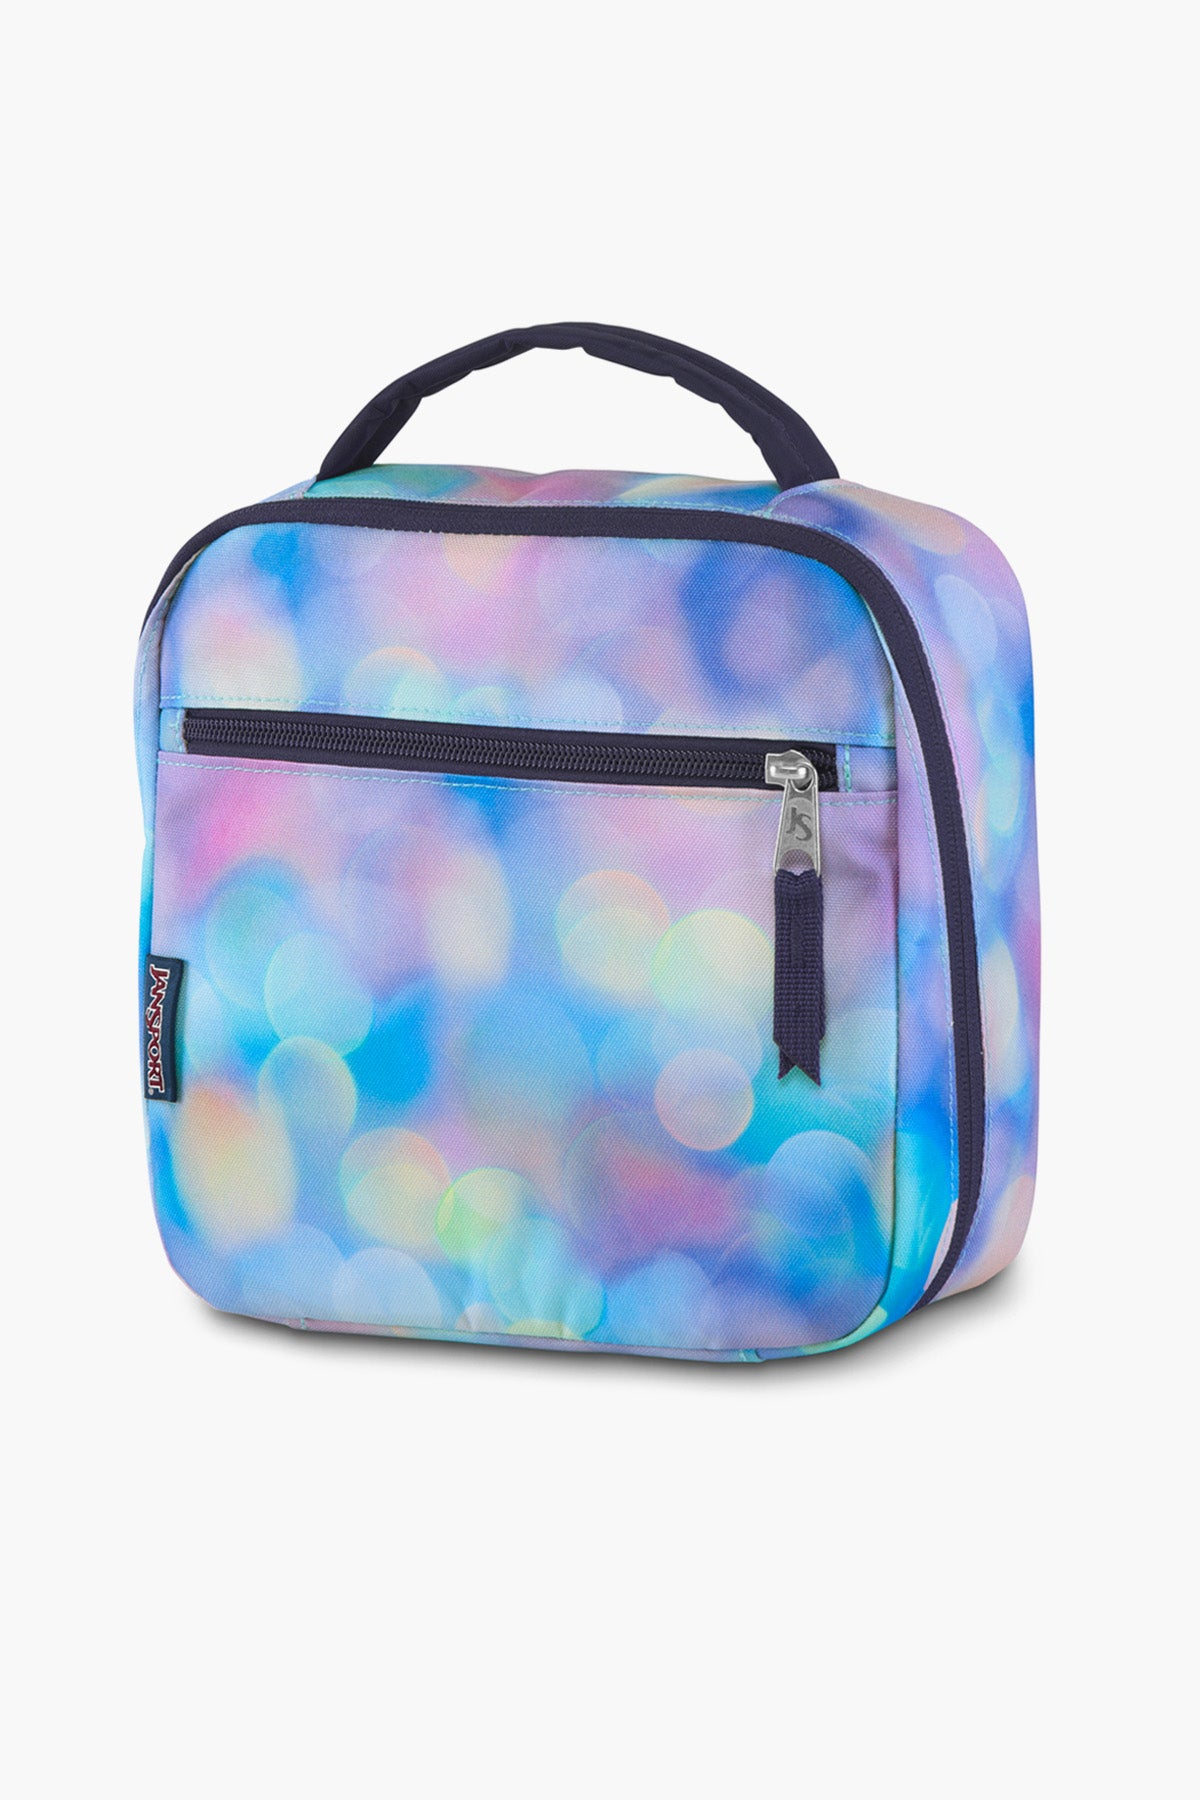 JanSport Lunch Break Lunchbox - City Lights